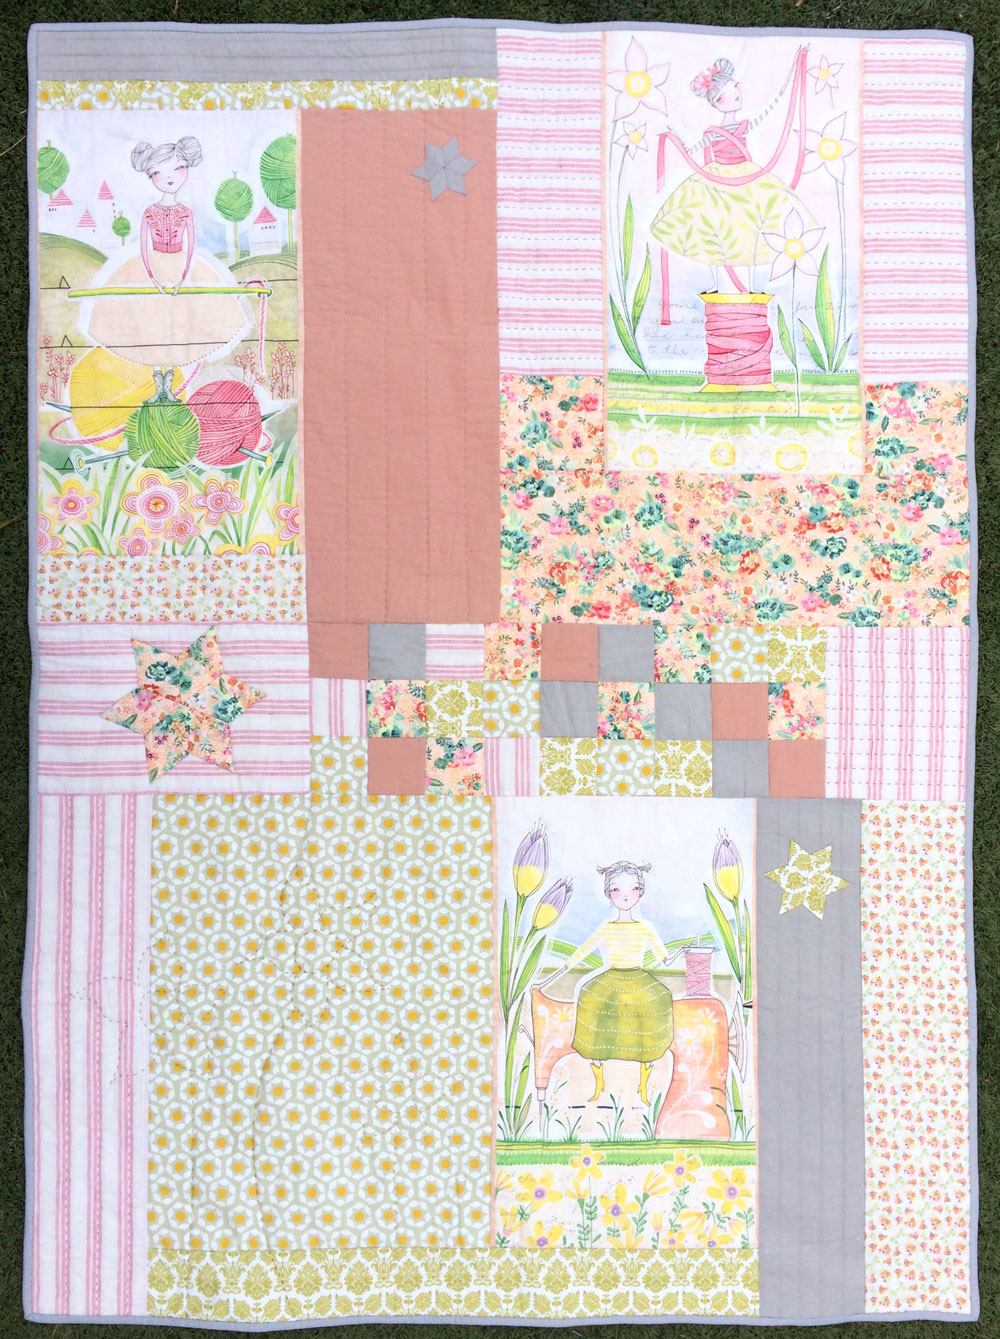 'Spring Whimsy' by Hettie's Patch